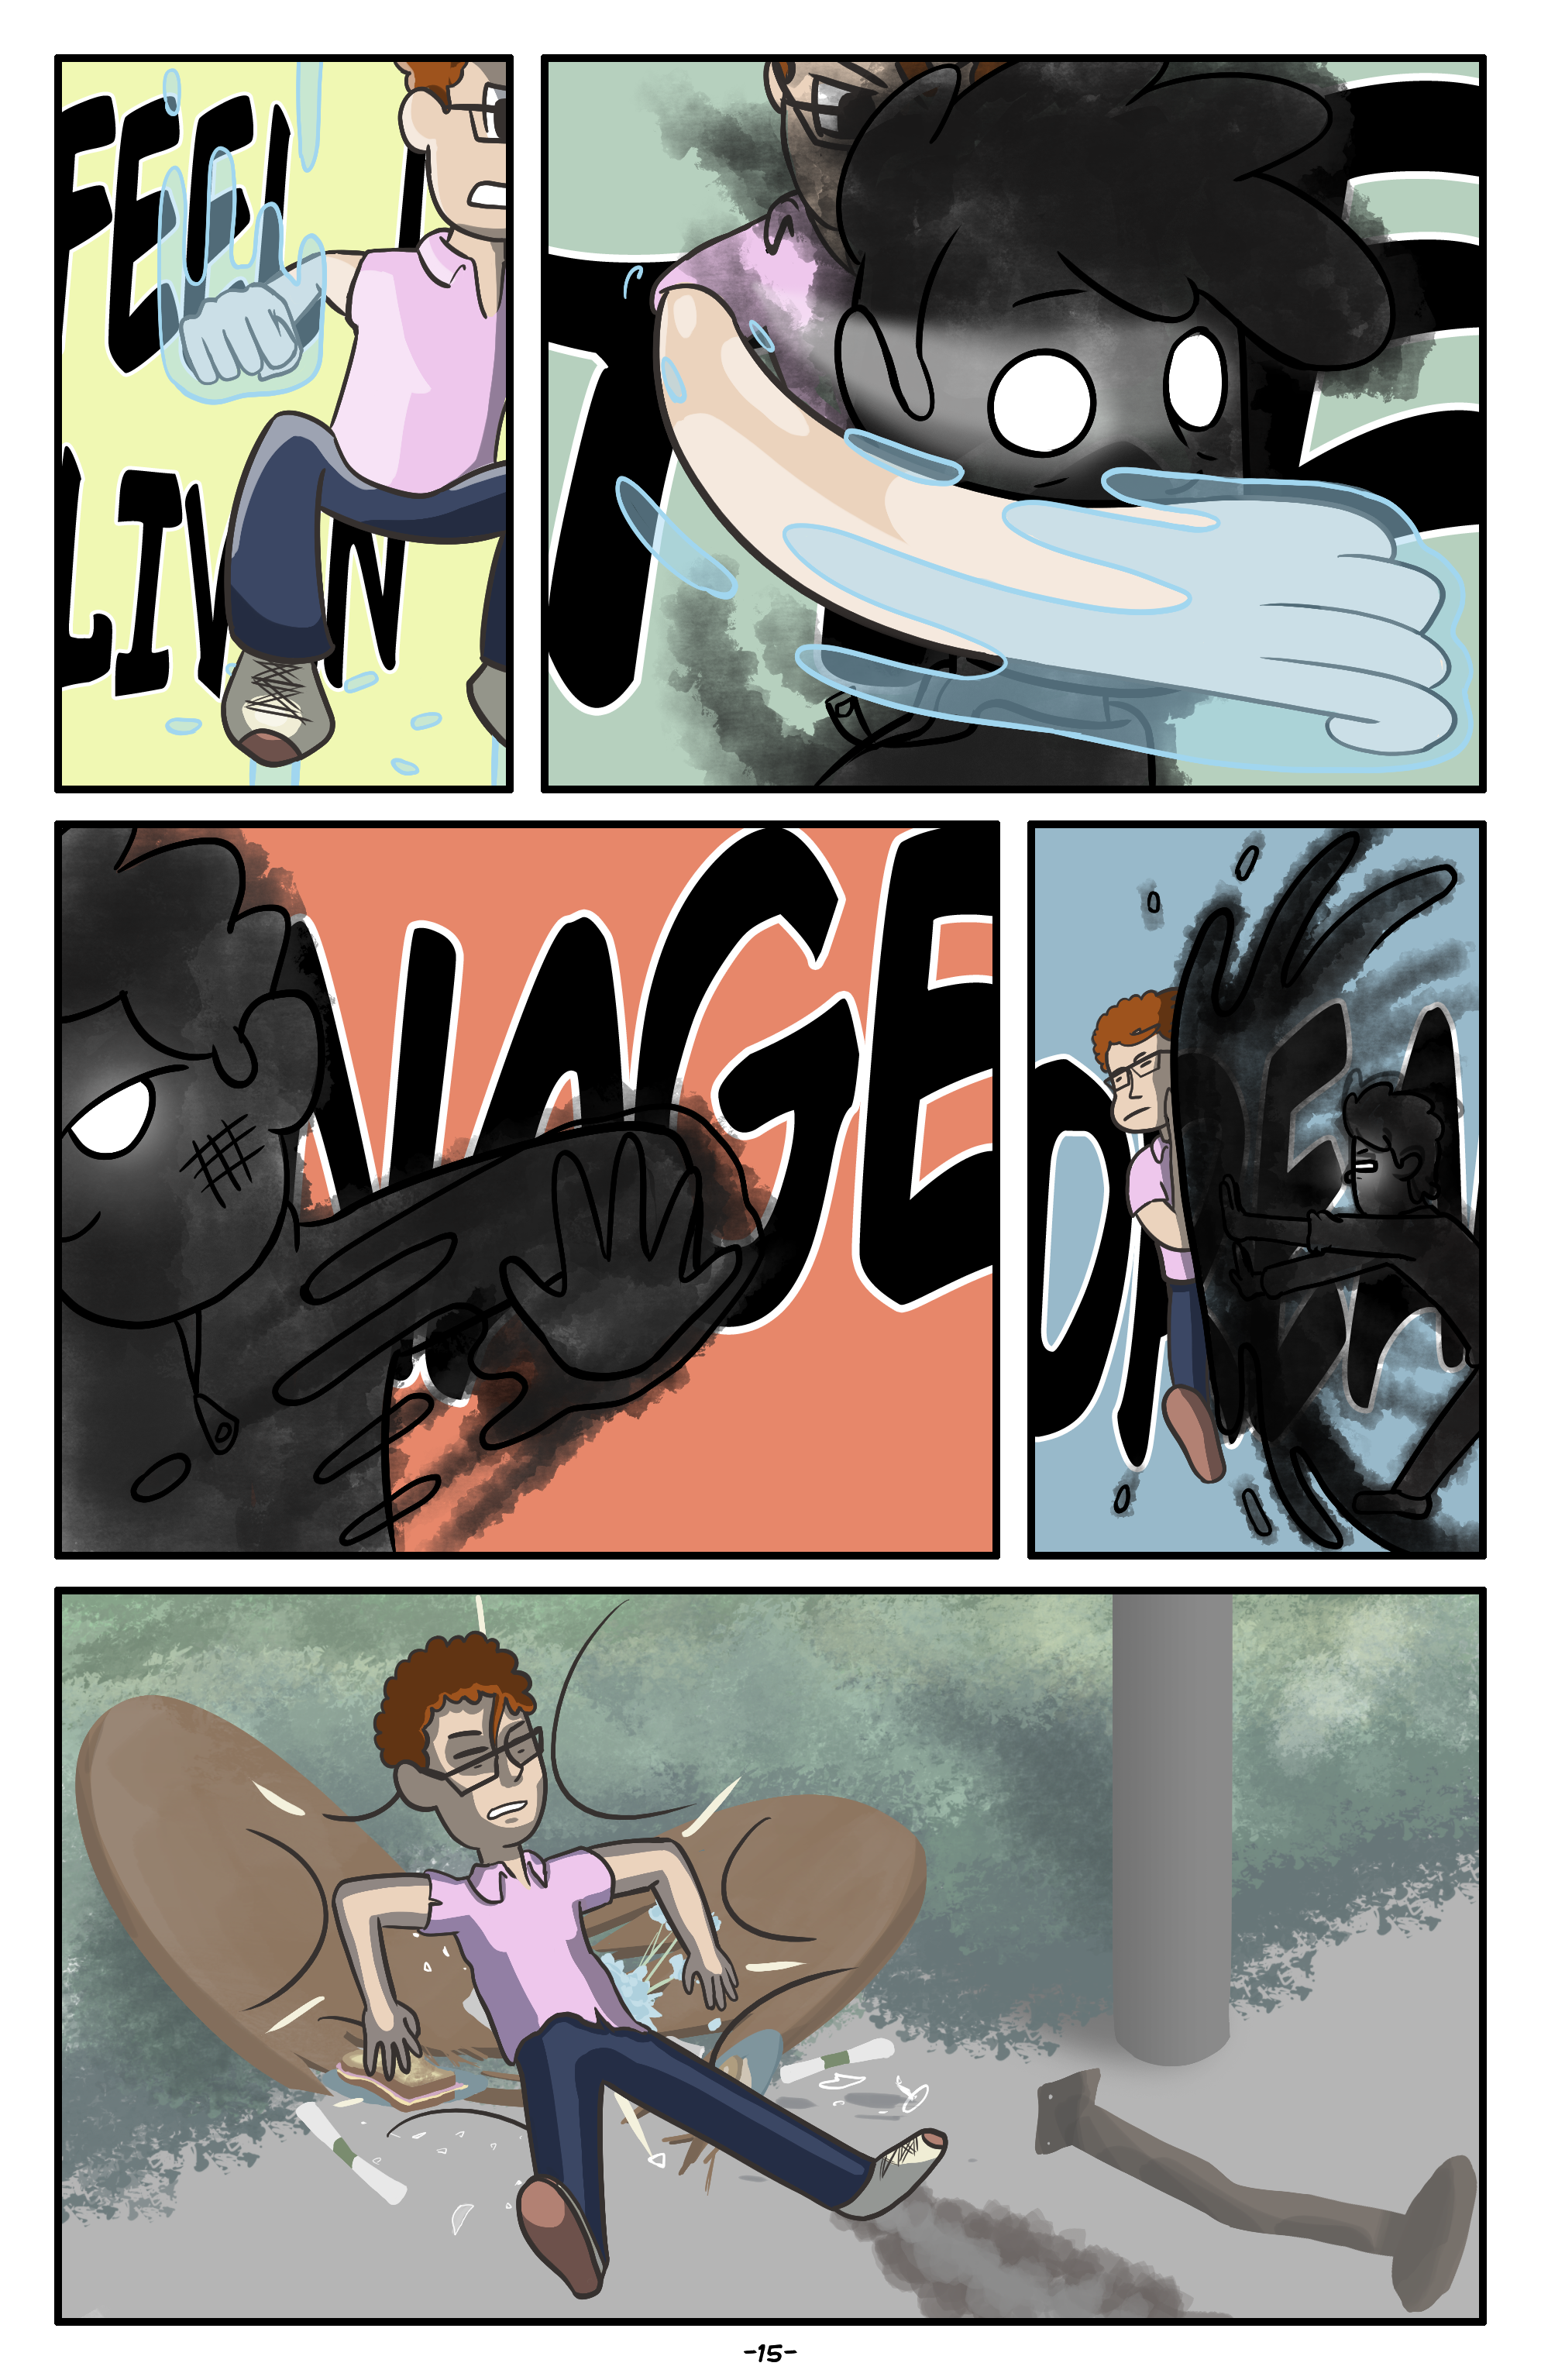 Page 15 Layout_Full-Size.png